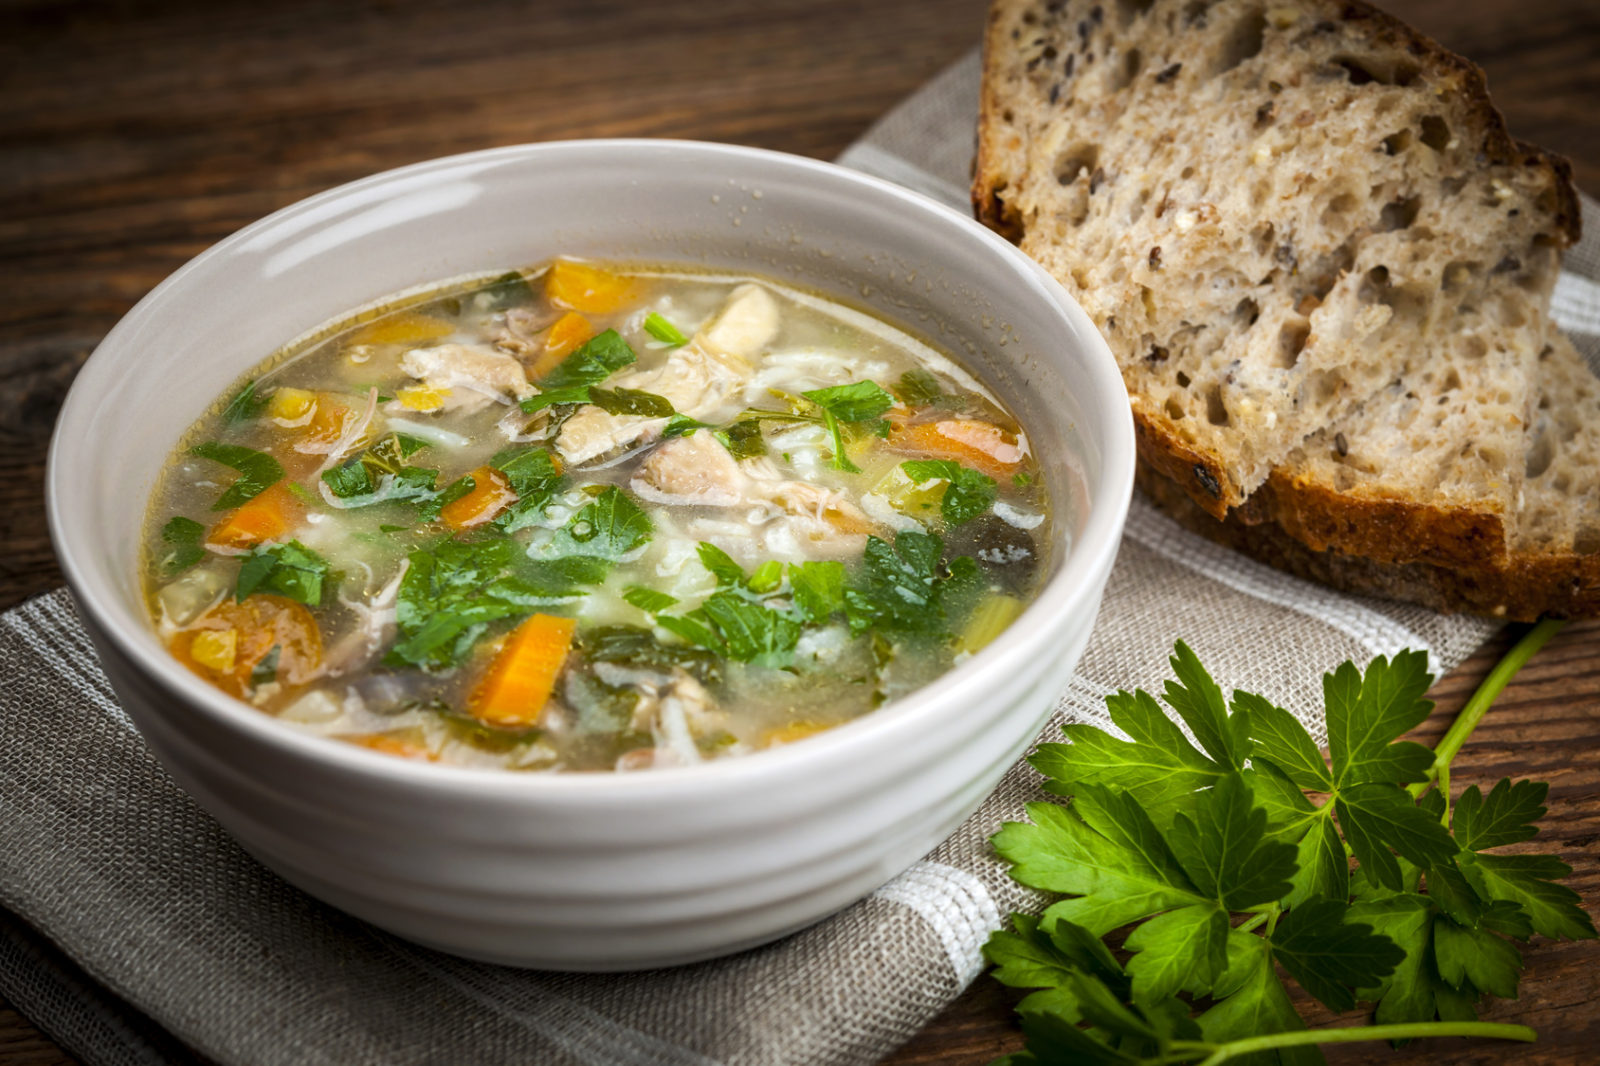 Clear Hatteras clam chowder with vegetables and herbs and a piece of bread on a rustic table